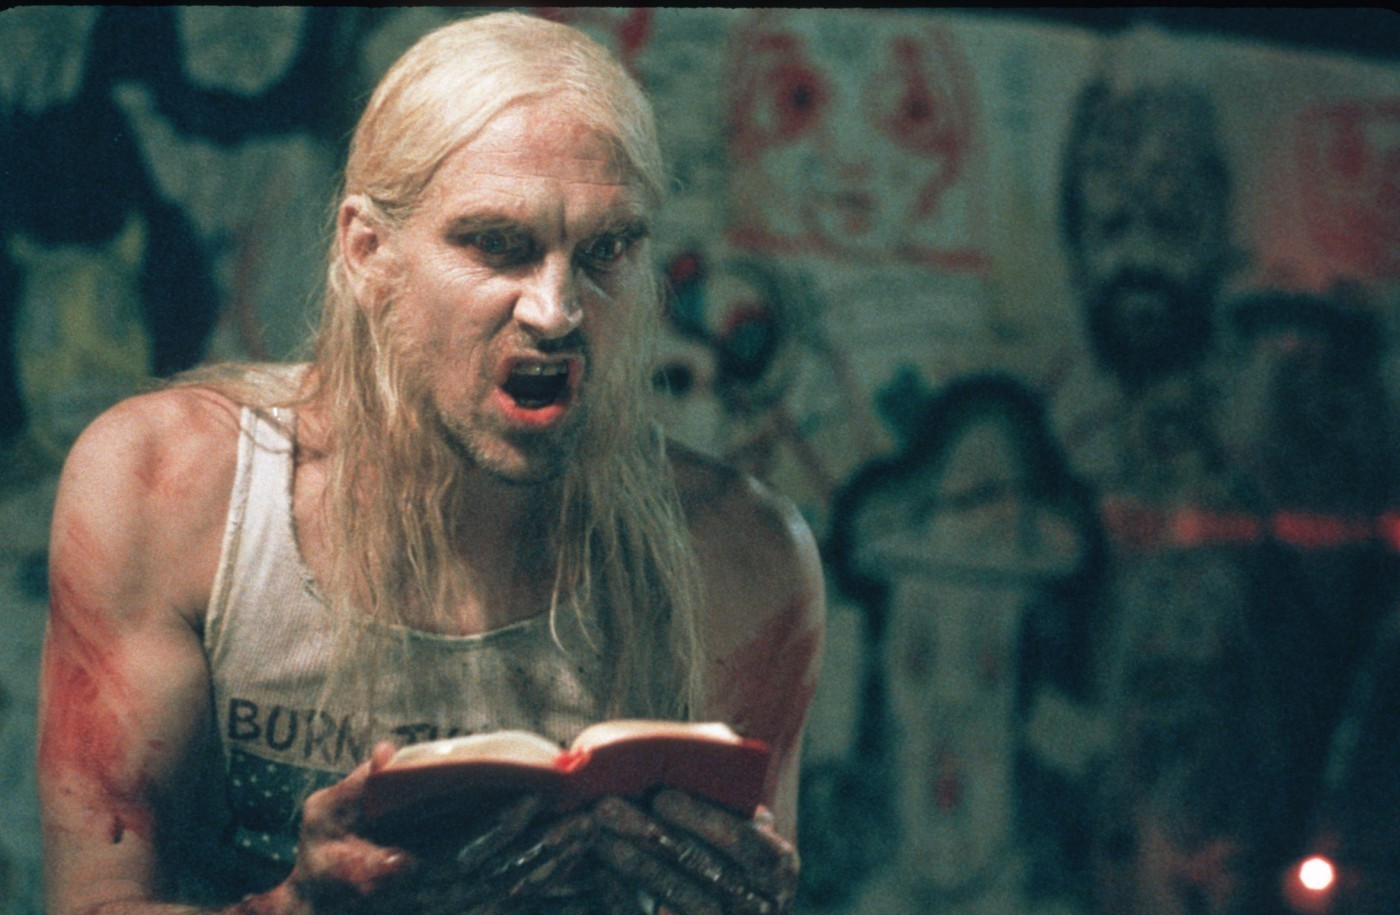 house of 1000 corpses Watch online house of 1000 corpses (2003) free full movie with english subtitle stream house of 1000 corpses online on gomoviesto.